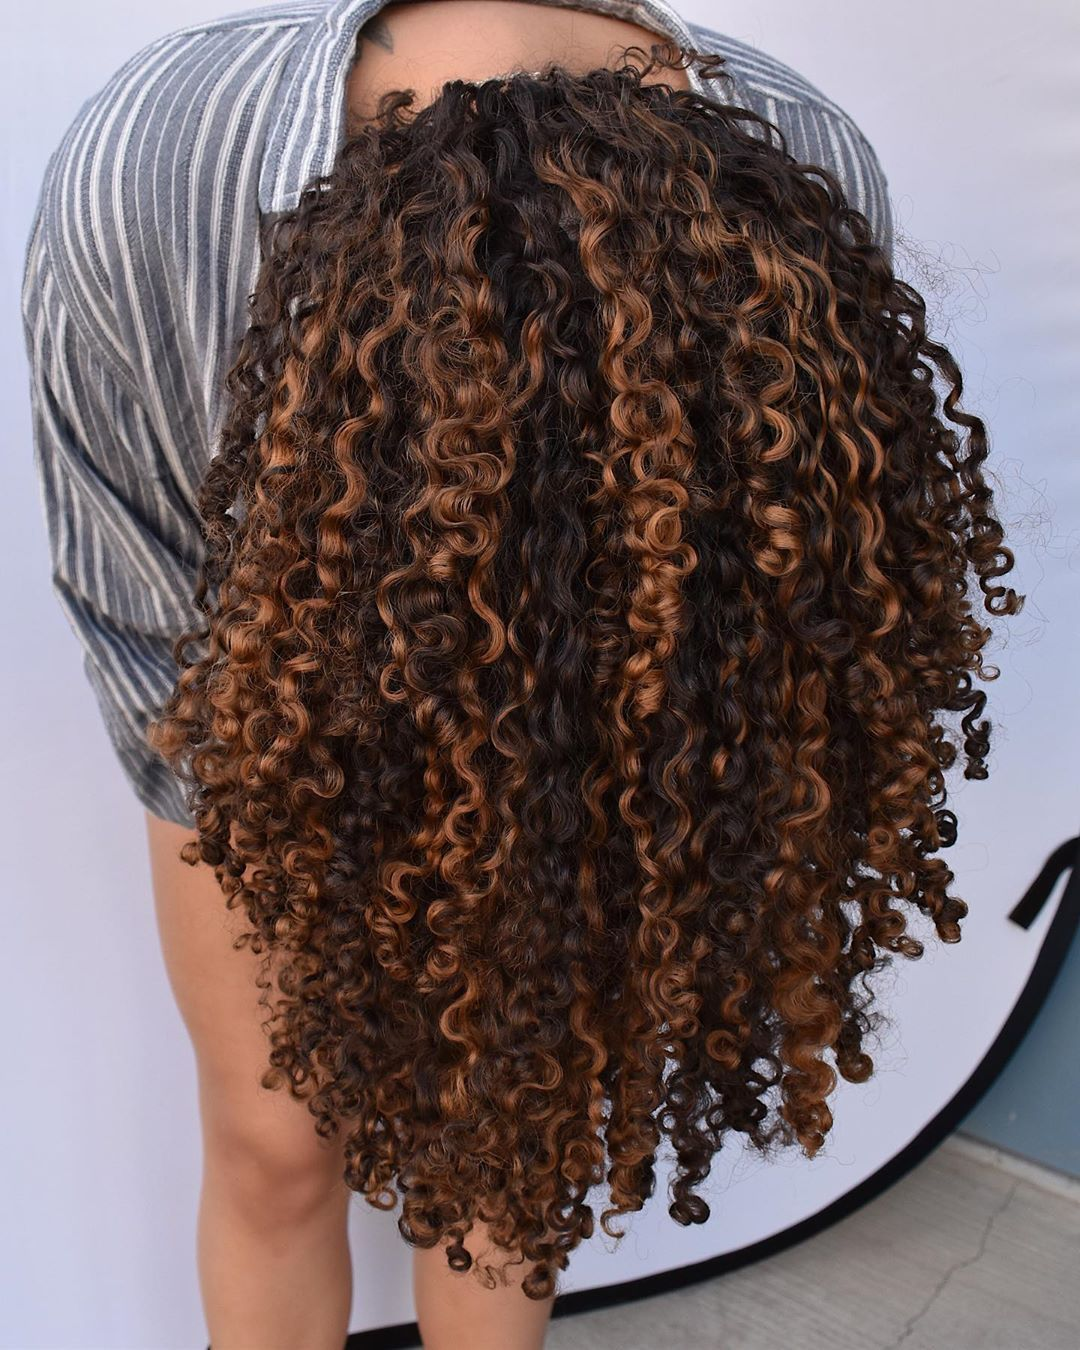 Evan Joseph Salon On Instagram Highlights To Dye 4 By Our Curly Director Cheyhair One In 2020 Curly Hair Inspiration Curly Hair Styles Naturally Colored Curly Hair